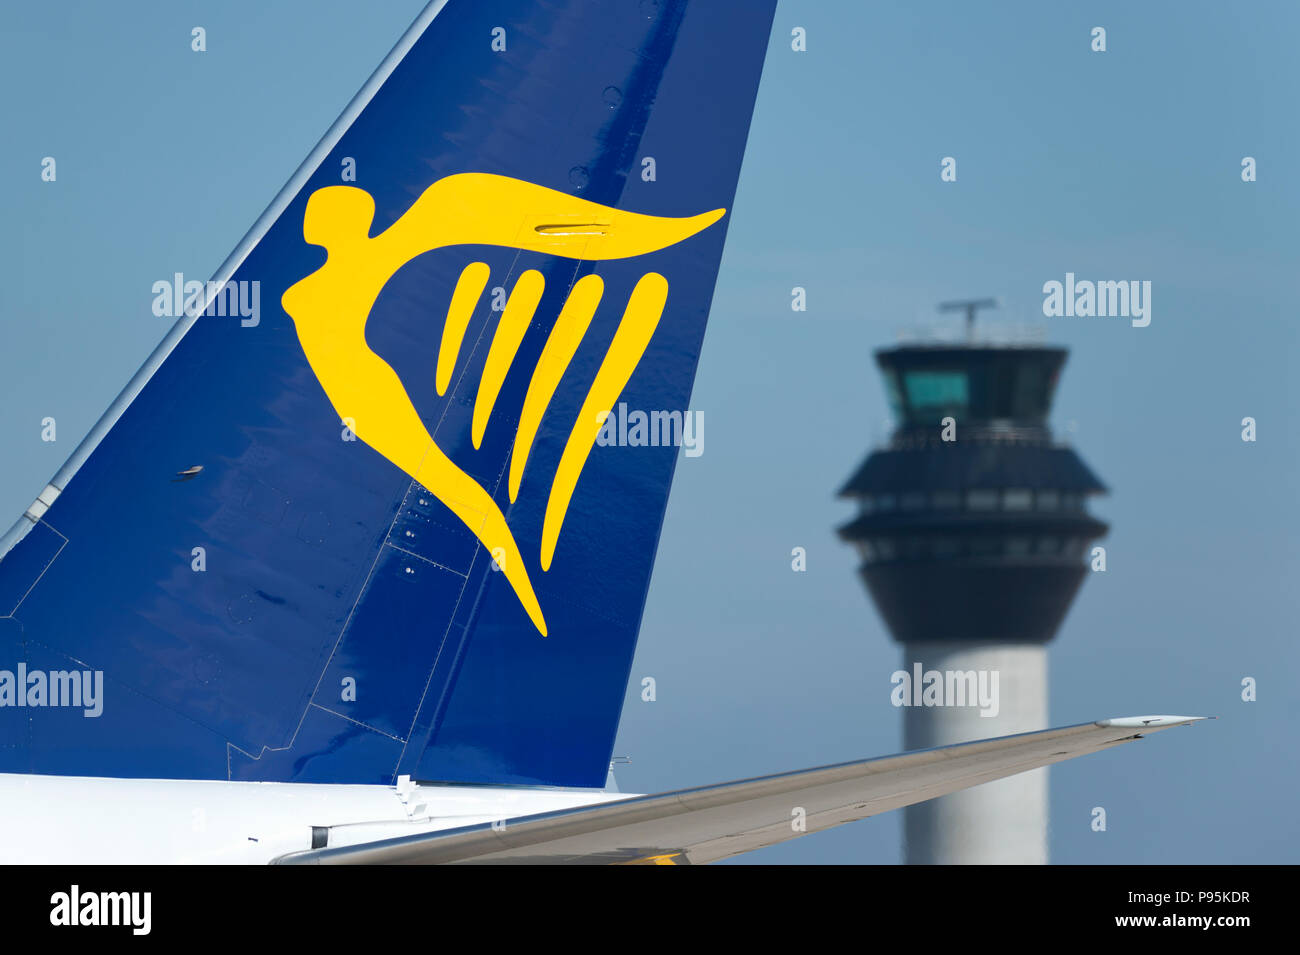 The tailfin of Ryanair Boeing 737-800 taxiing along the runway in front of the control tower at Manchester Airport. - Stock Image